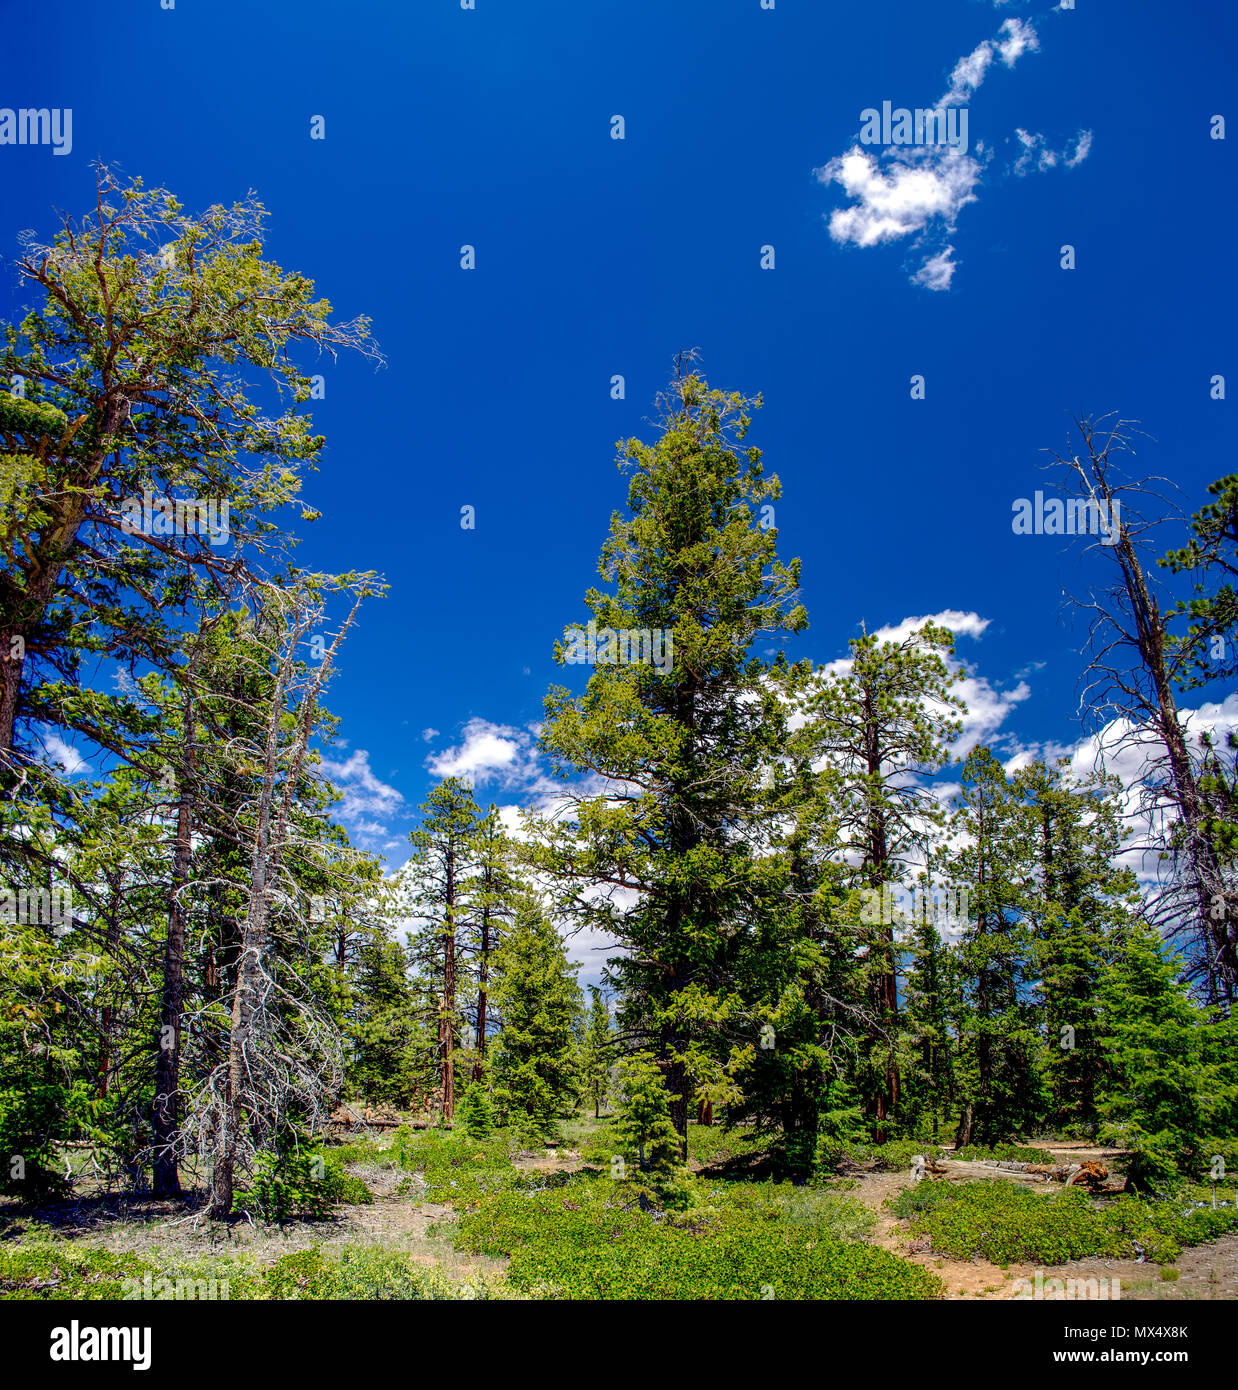 Paths leading through a forest with green ground cover, tall trees under a blue sky with white fluffy clouds. - Stock Image